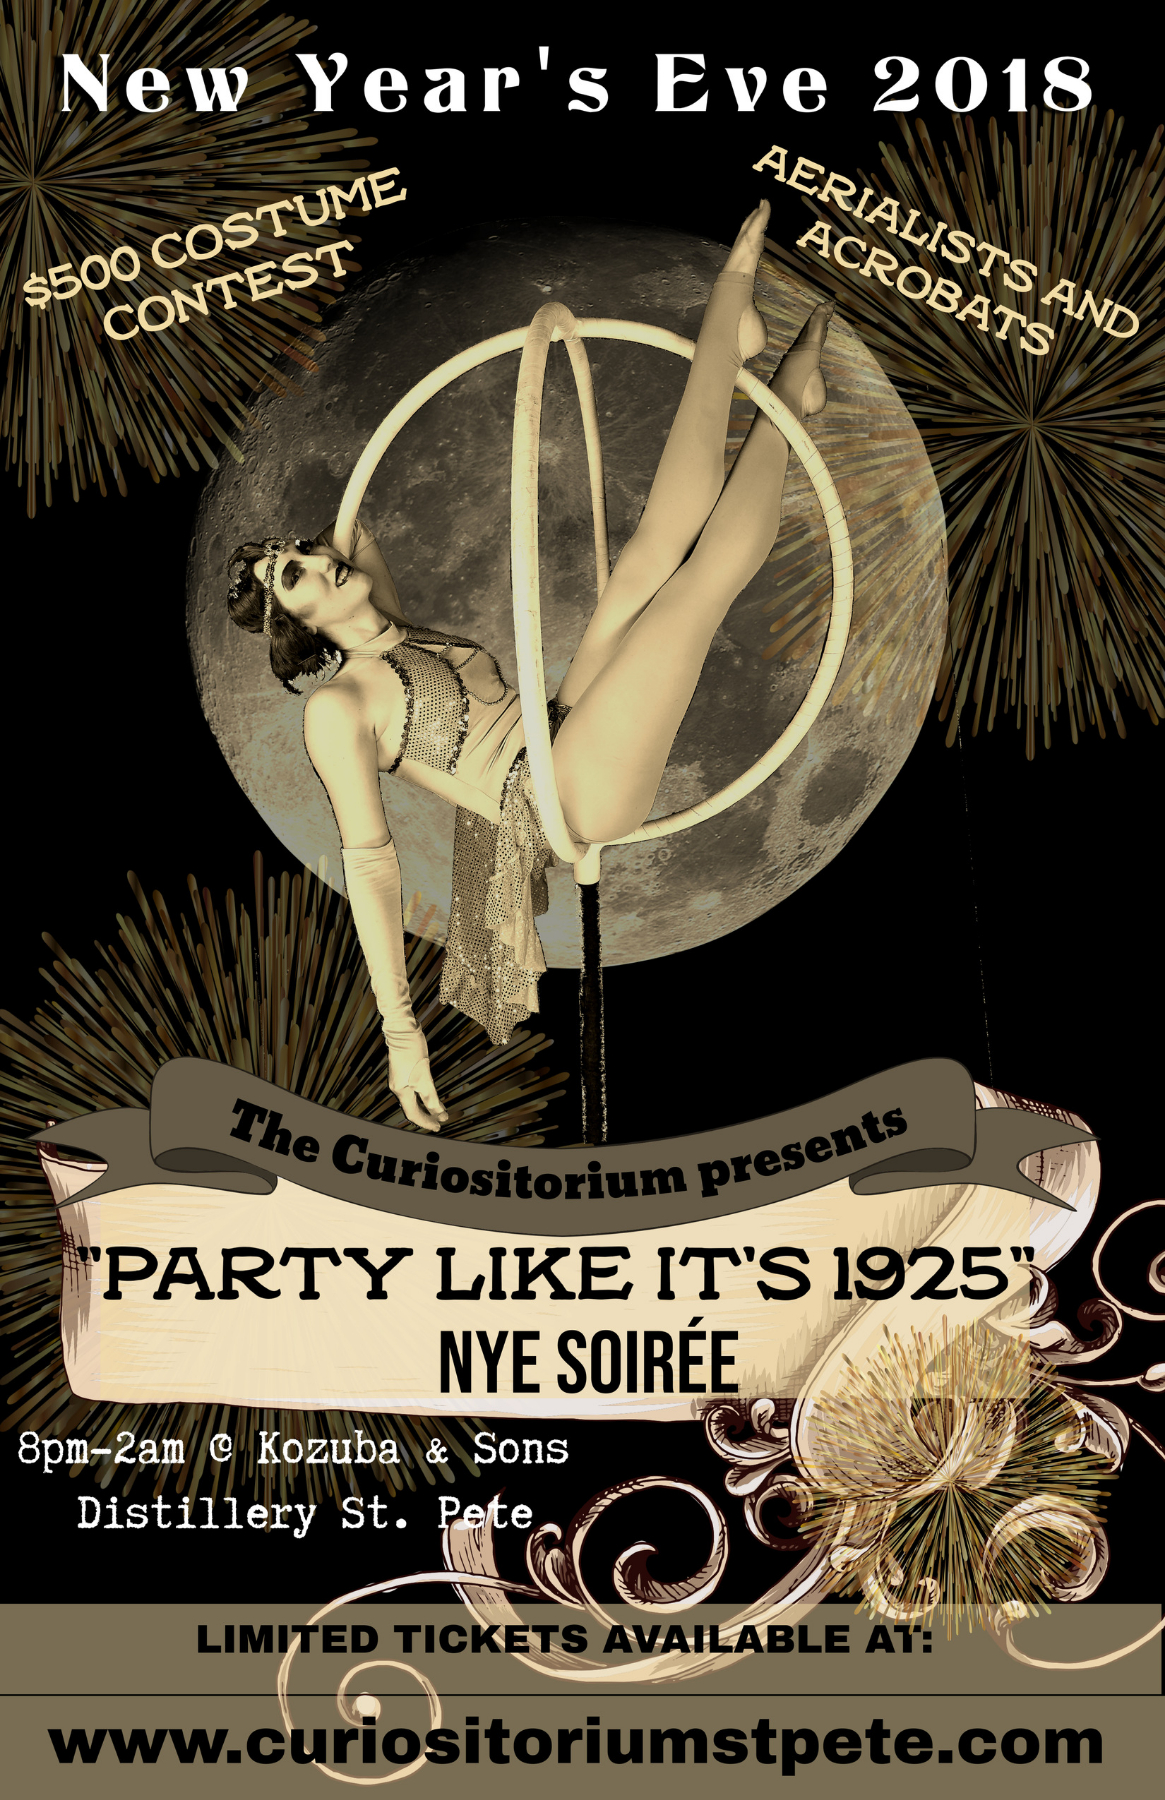 Party Like It's 1925 NYE Soiree